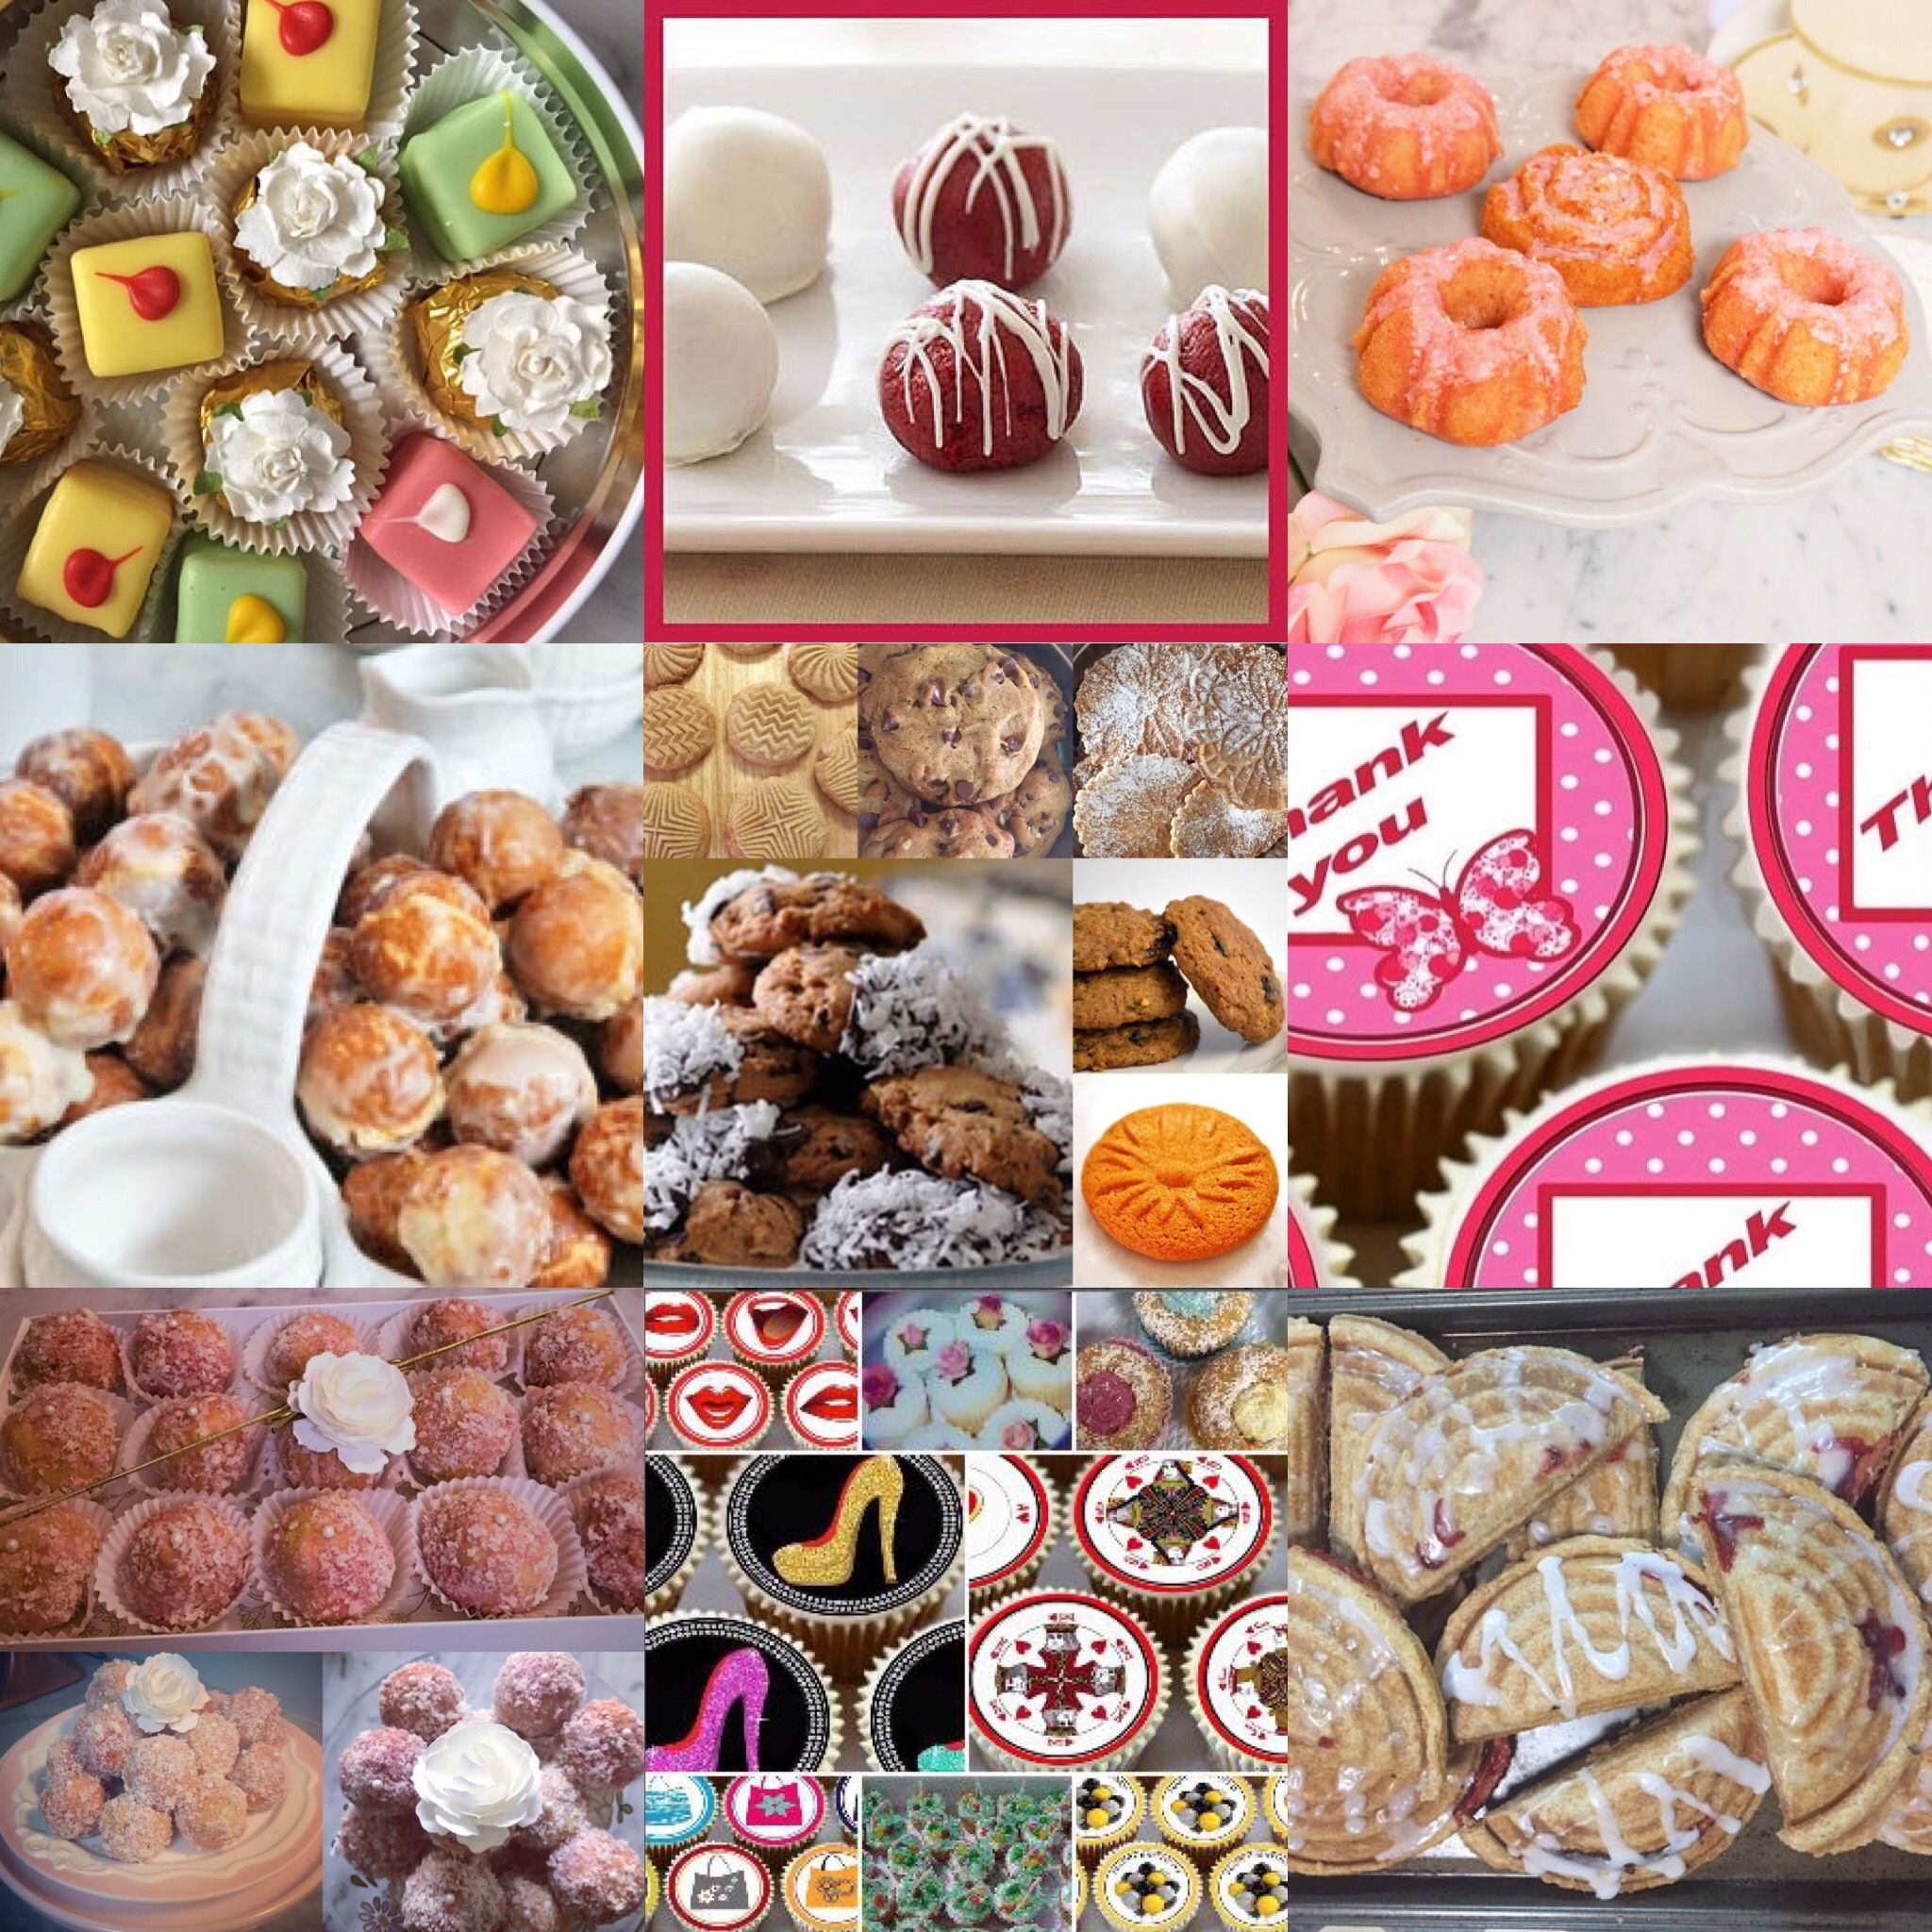 The Diabetic Pastry Chef® Bakery & Catering Wedding food